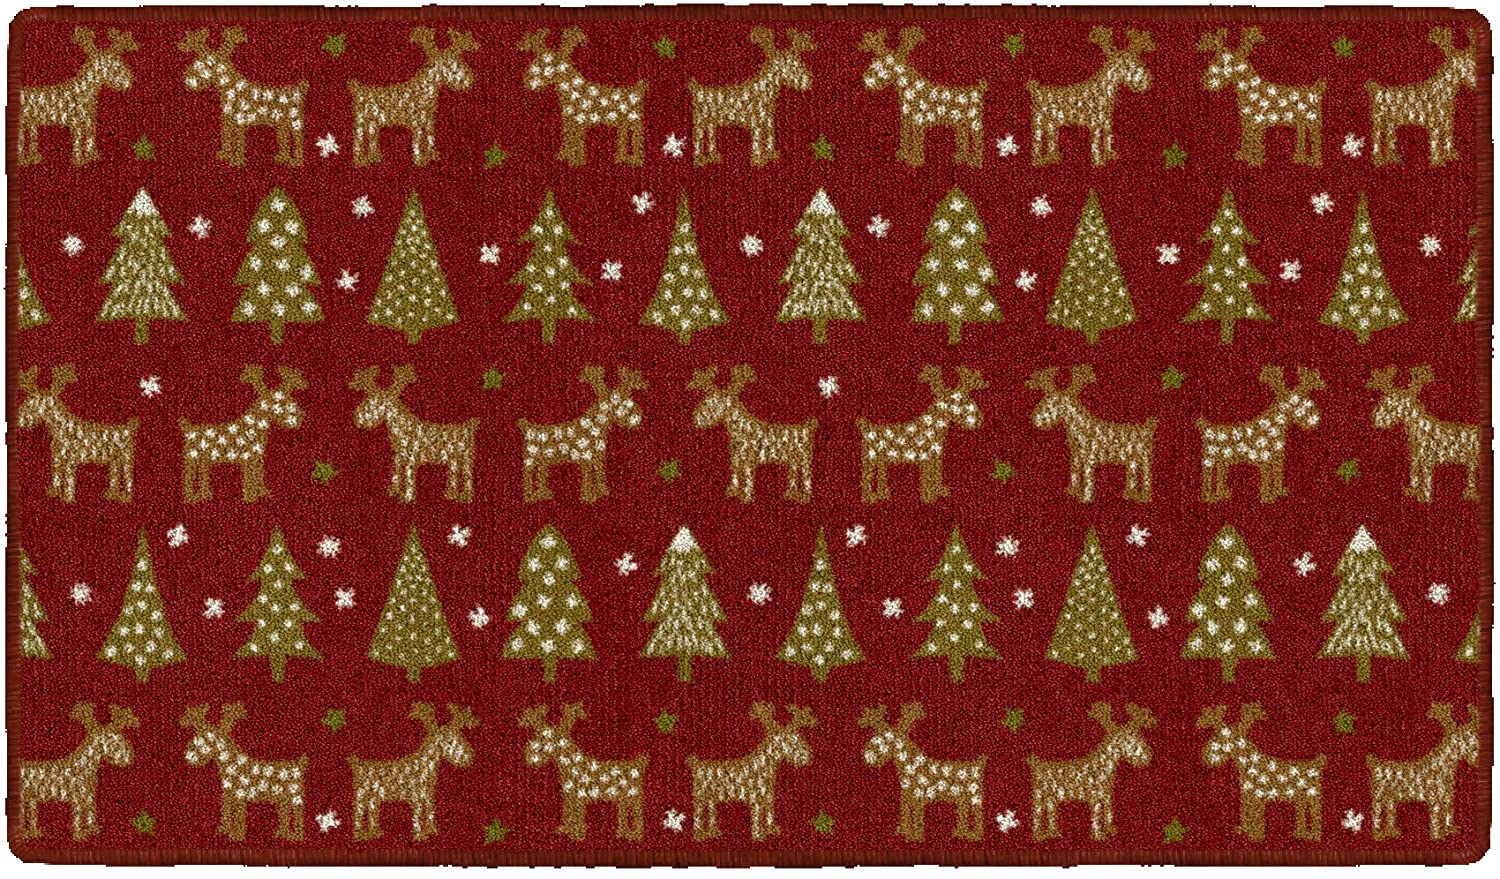 Brumlow Mills Holiday Delight Washable Festive Christmas Trees and Reindeer Indoor or Outdoor Holiday Rug for Living or Dining Room, Bedroom and Kitchen Area, 20